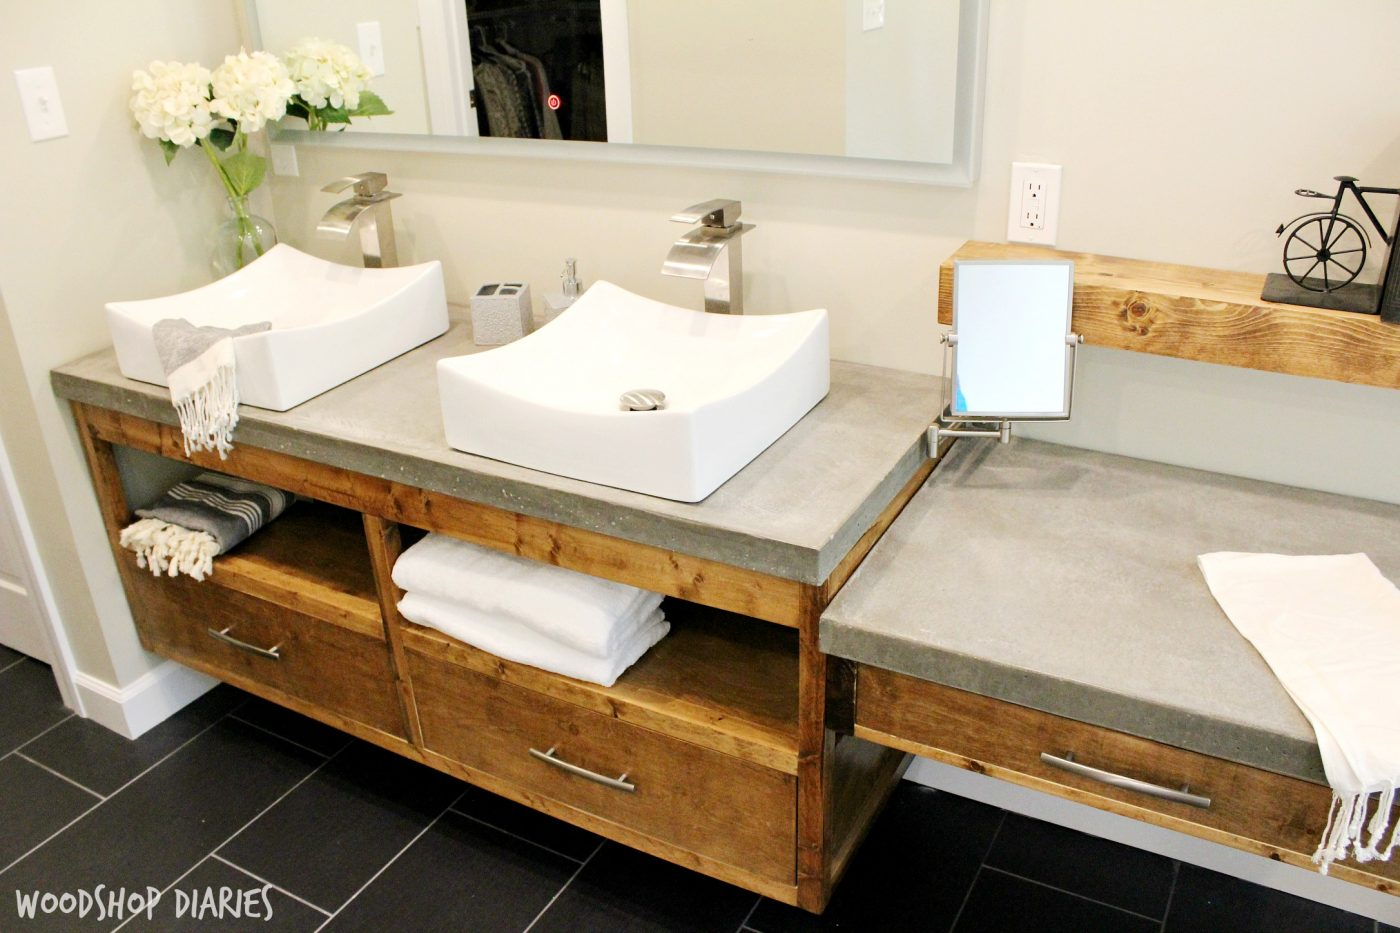 Free Building Plans For This Modern Bathroom Vanity. Gorgeous Concrete  Countertops On Floating Bathroom Vanity